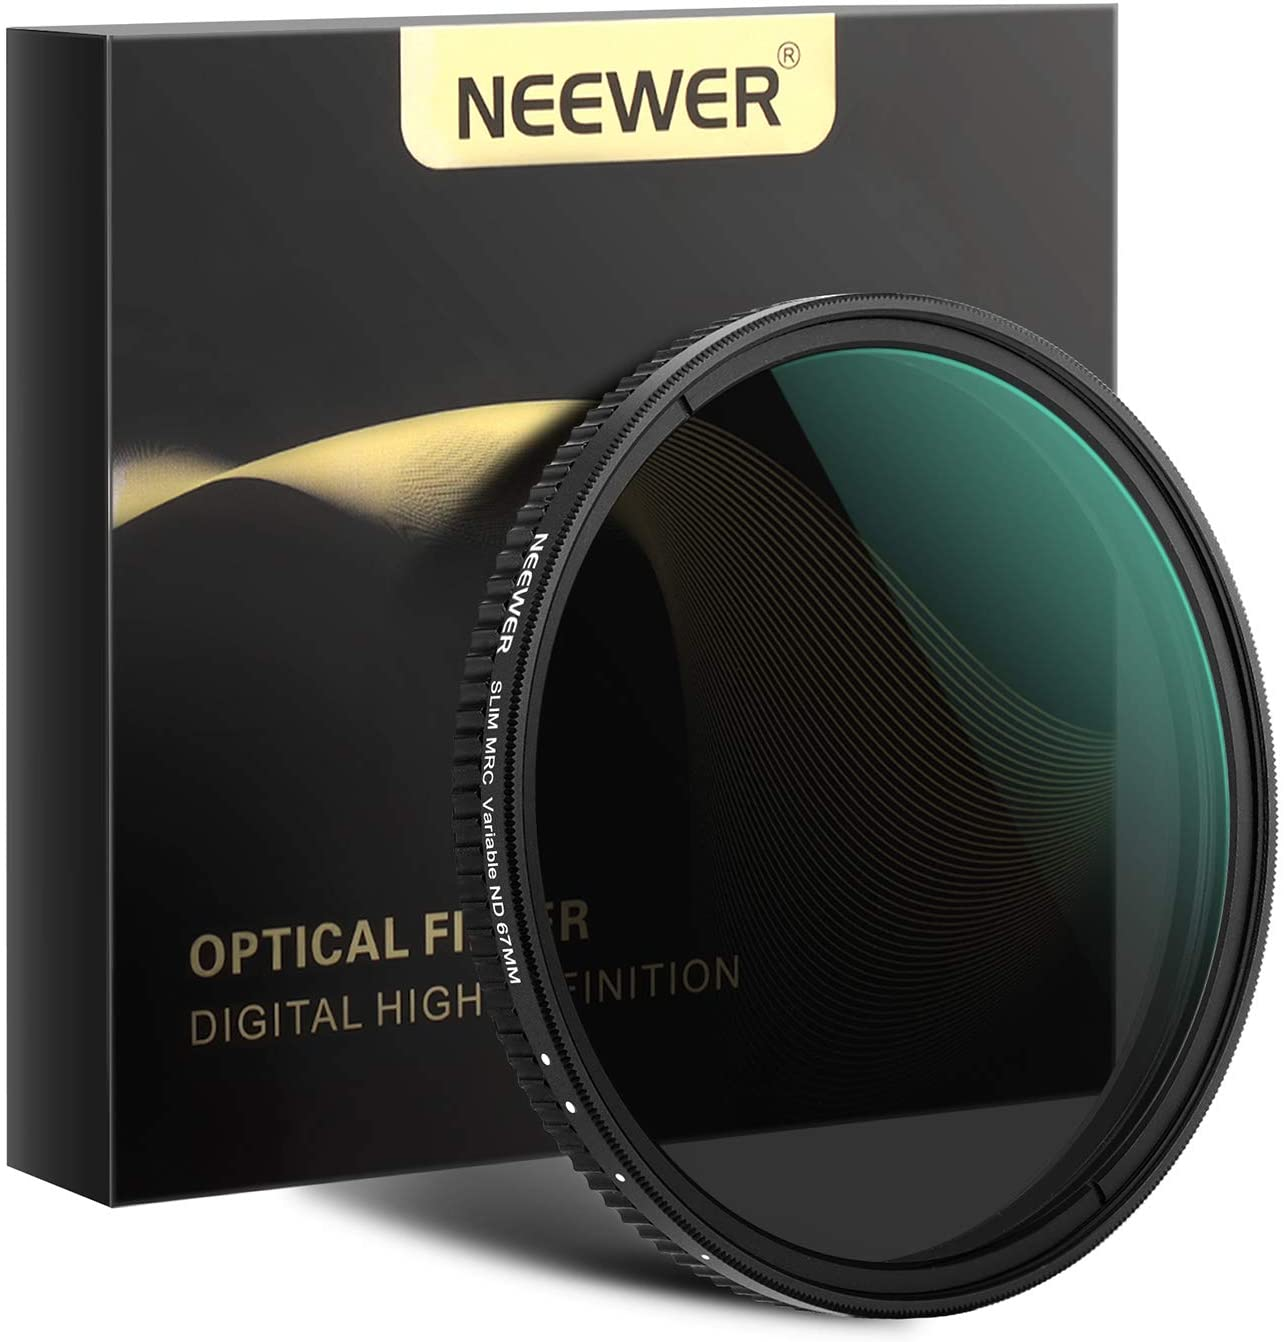 Neewer 67mm Variable Fader ND Filter Neutral Density Variable Filter ND2 to ND32 (1-5 Stop) for Camera Lens + No Black Cross + Multilayer Coating + Ultra-Thin Frame Design